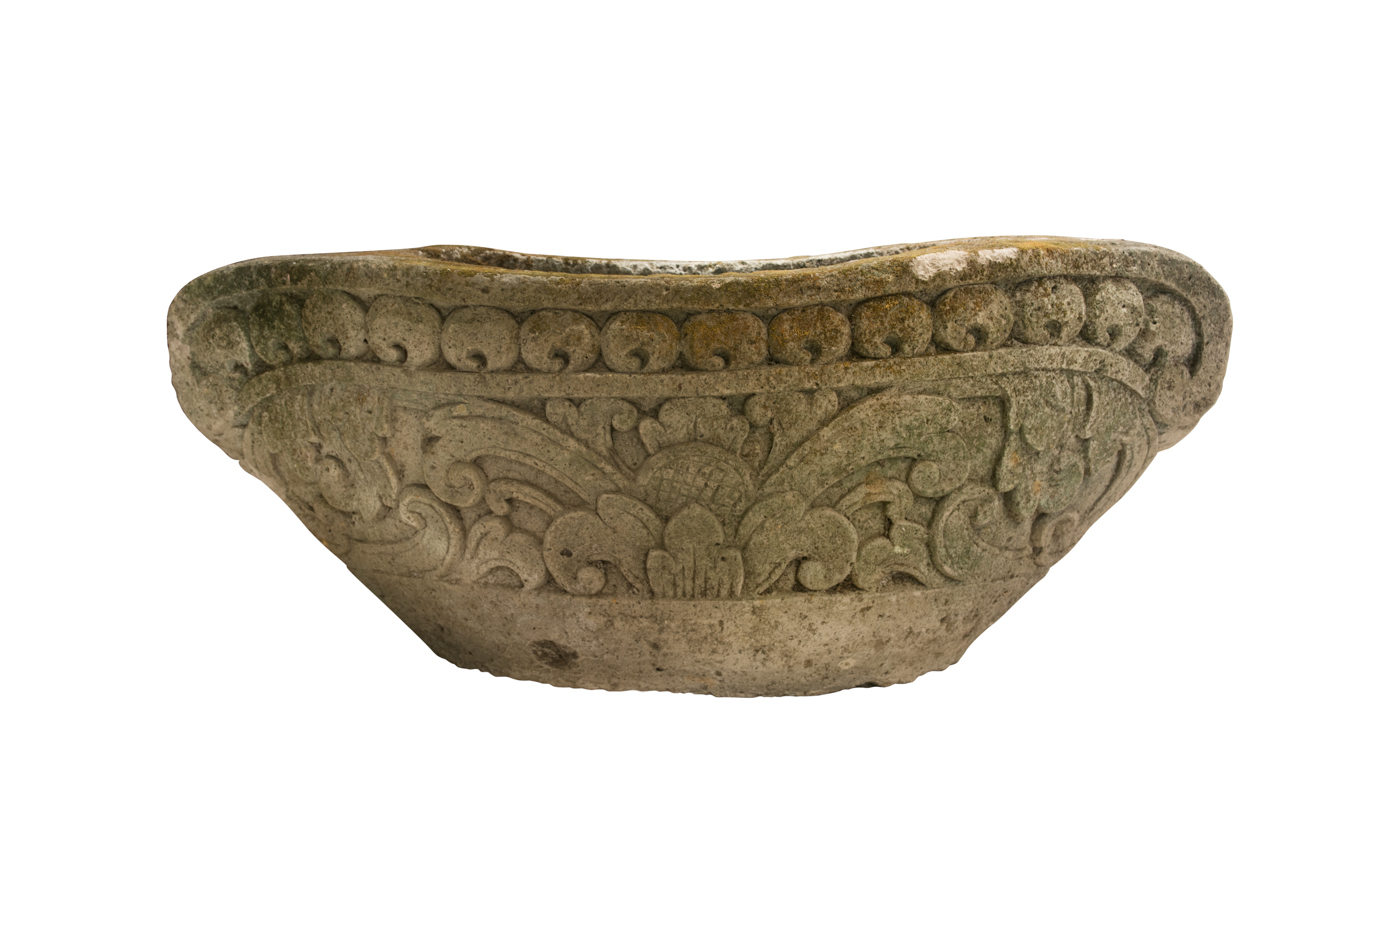 Pot carved in stone in the shape of a boat